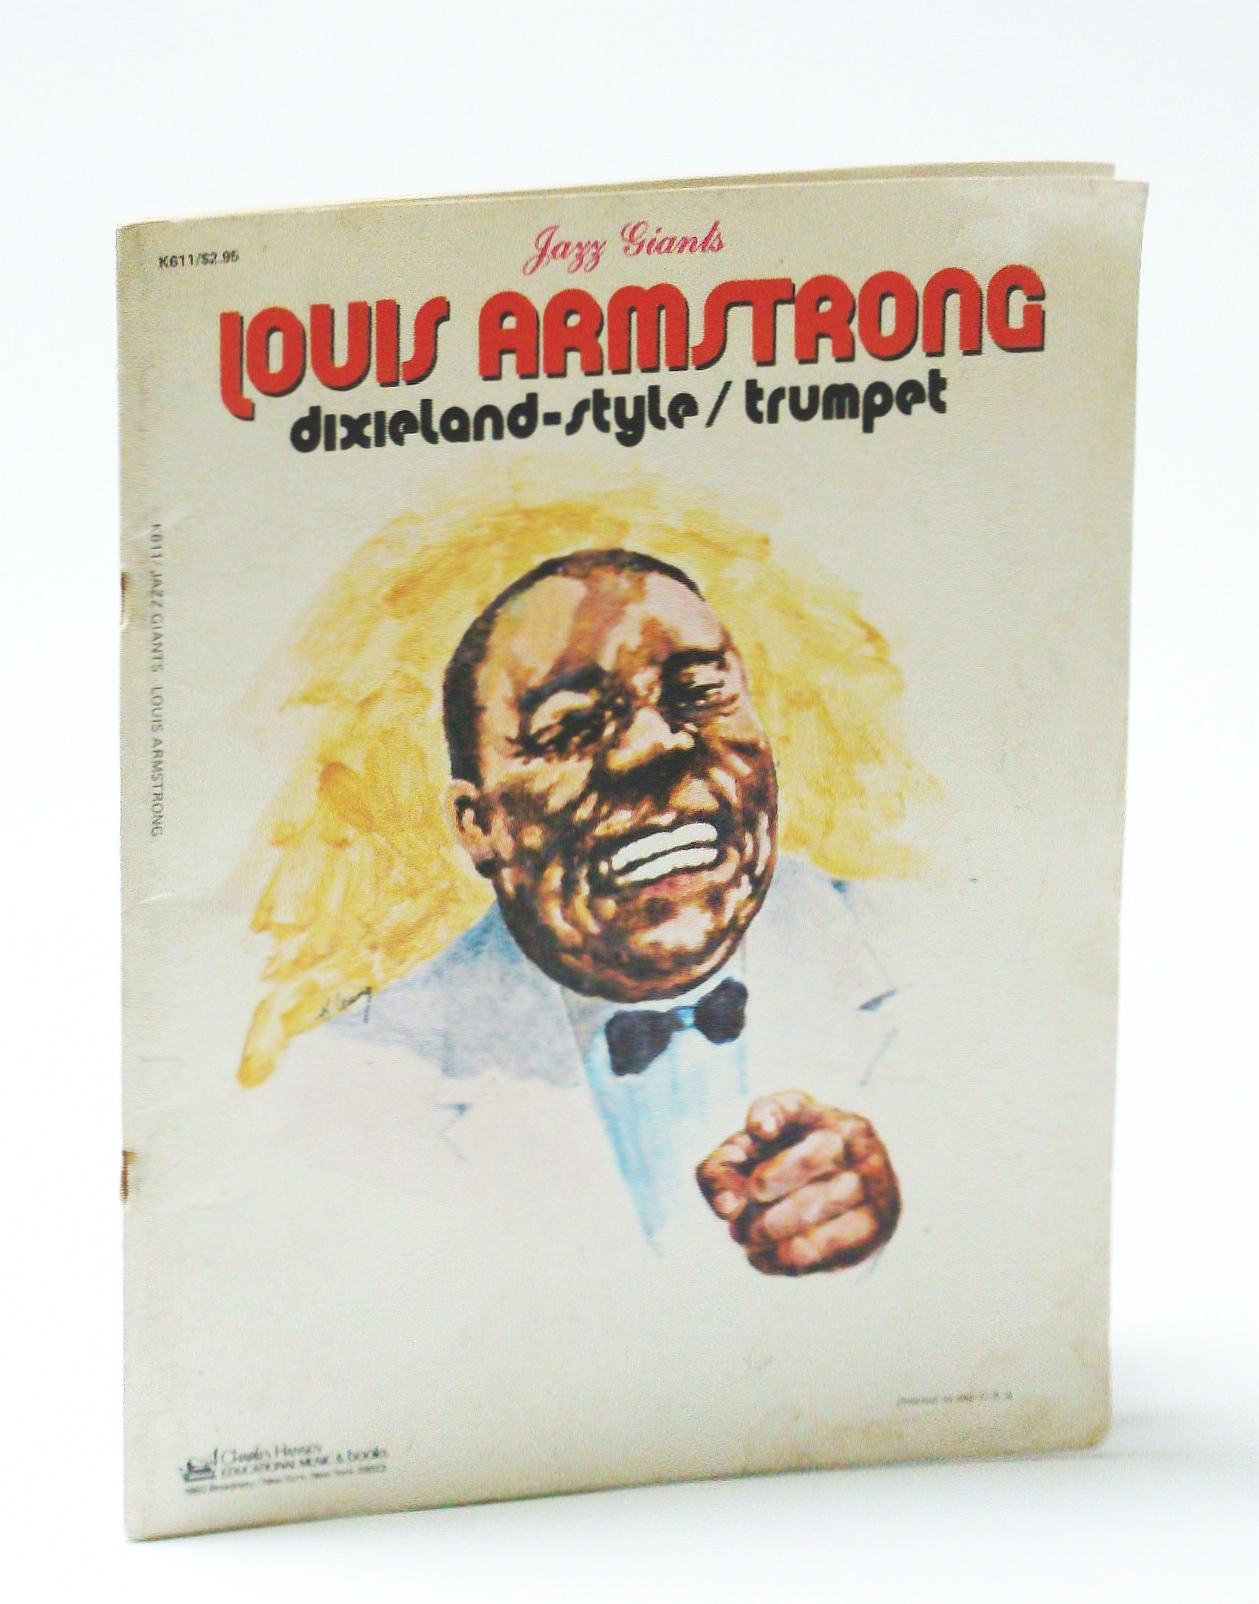 Image for Louis Armstrong - Jazz Giants: Dixieland-Style: Trumpte Sheet Music